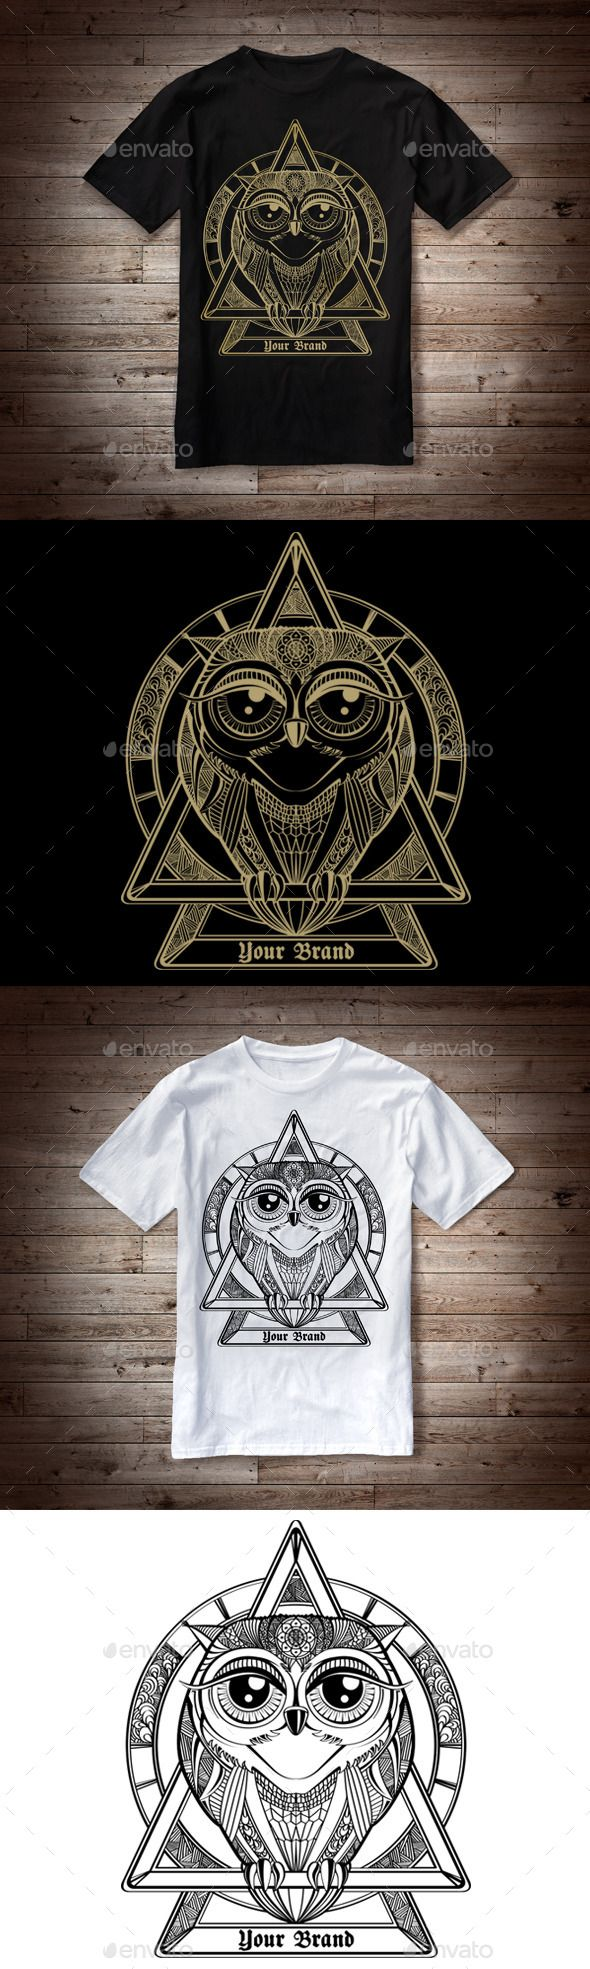 White t shirt eps - T Shirt Illustration Owl Theme